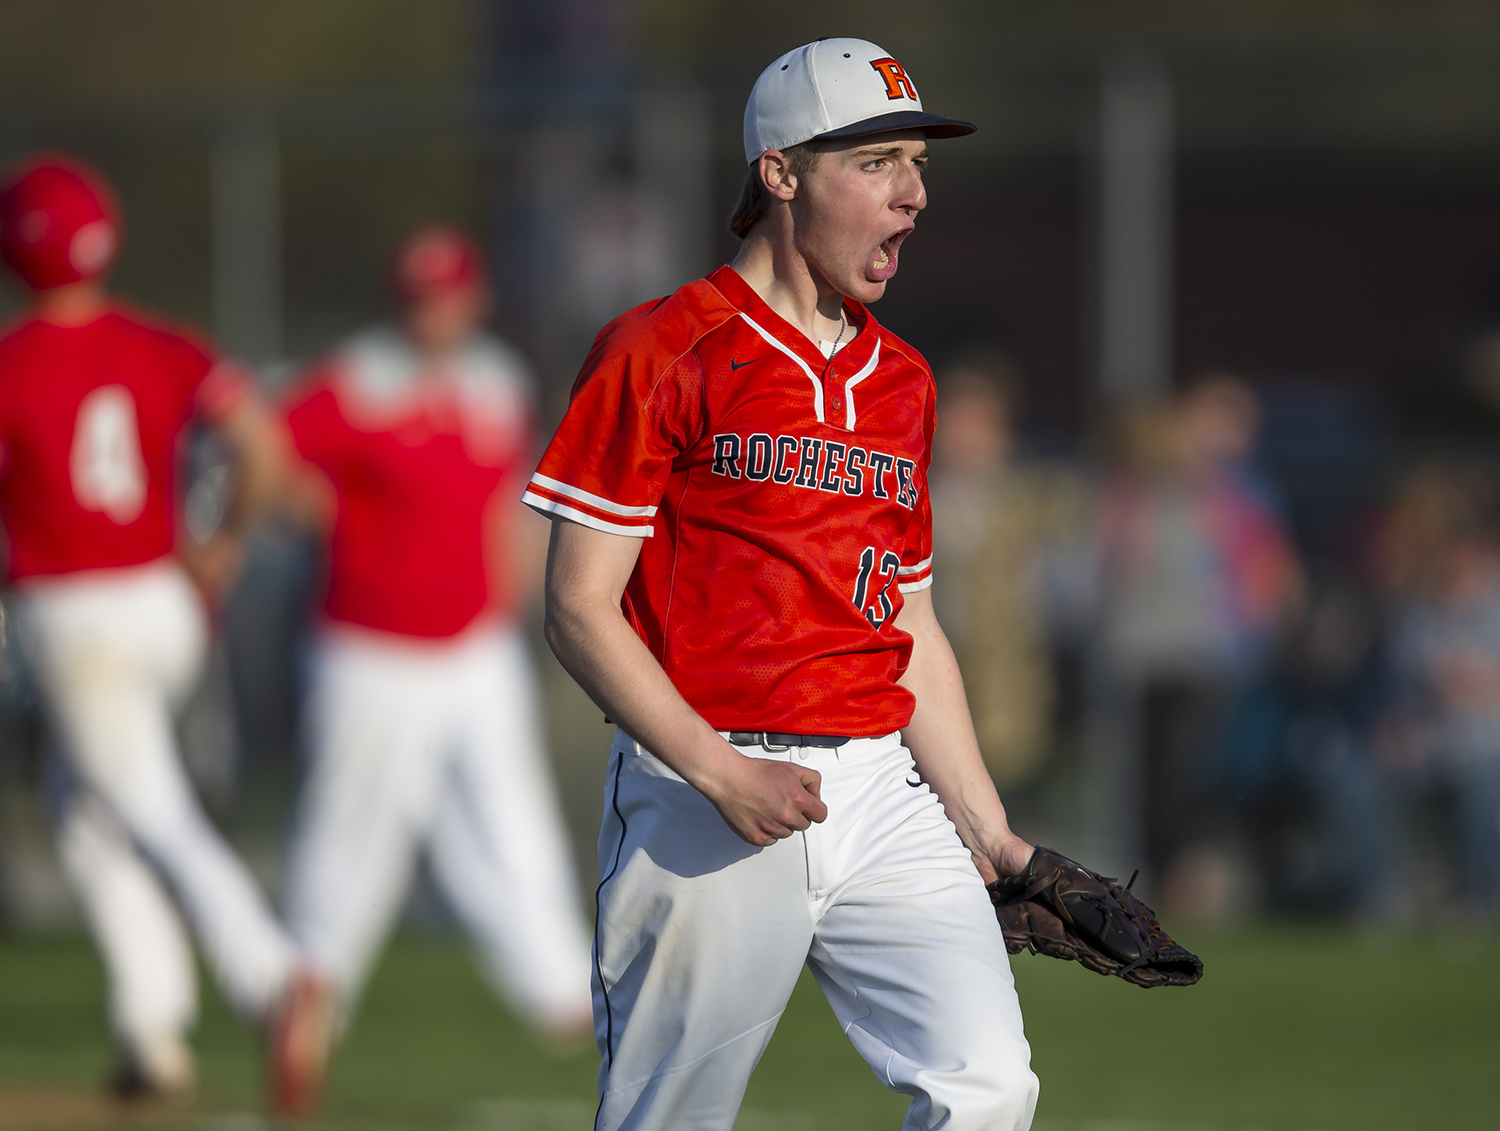 Rochester's Alex Bruno reacts after getting the save as the Rockets defeat Glenwood 5-4 at Rochester High School, Tuesday, April 16, 2019, in Rochester, Ill. [Justin L. Fowler/The State Journal-Register]